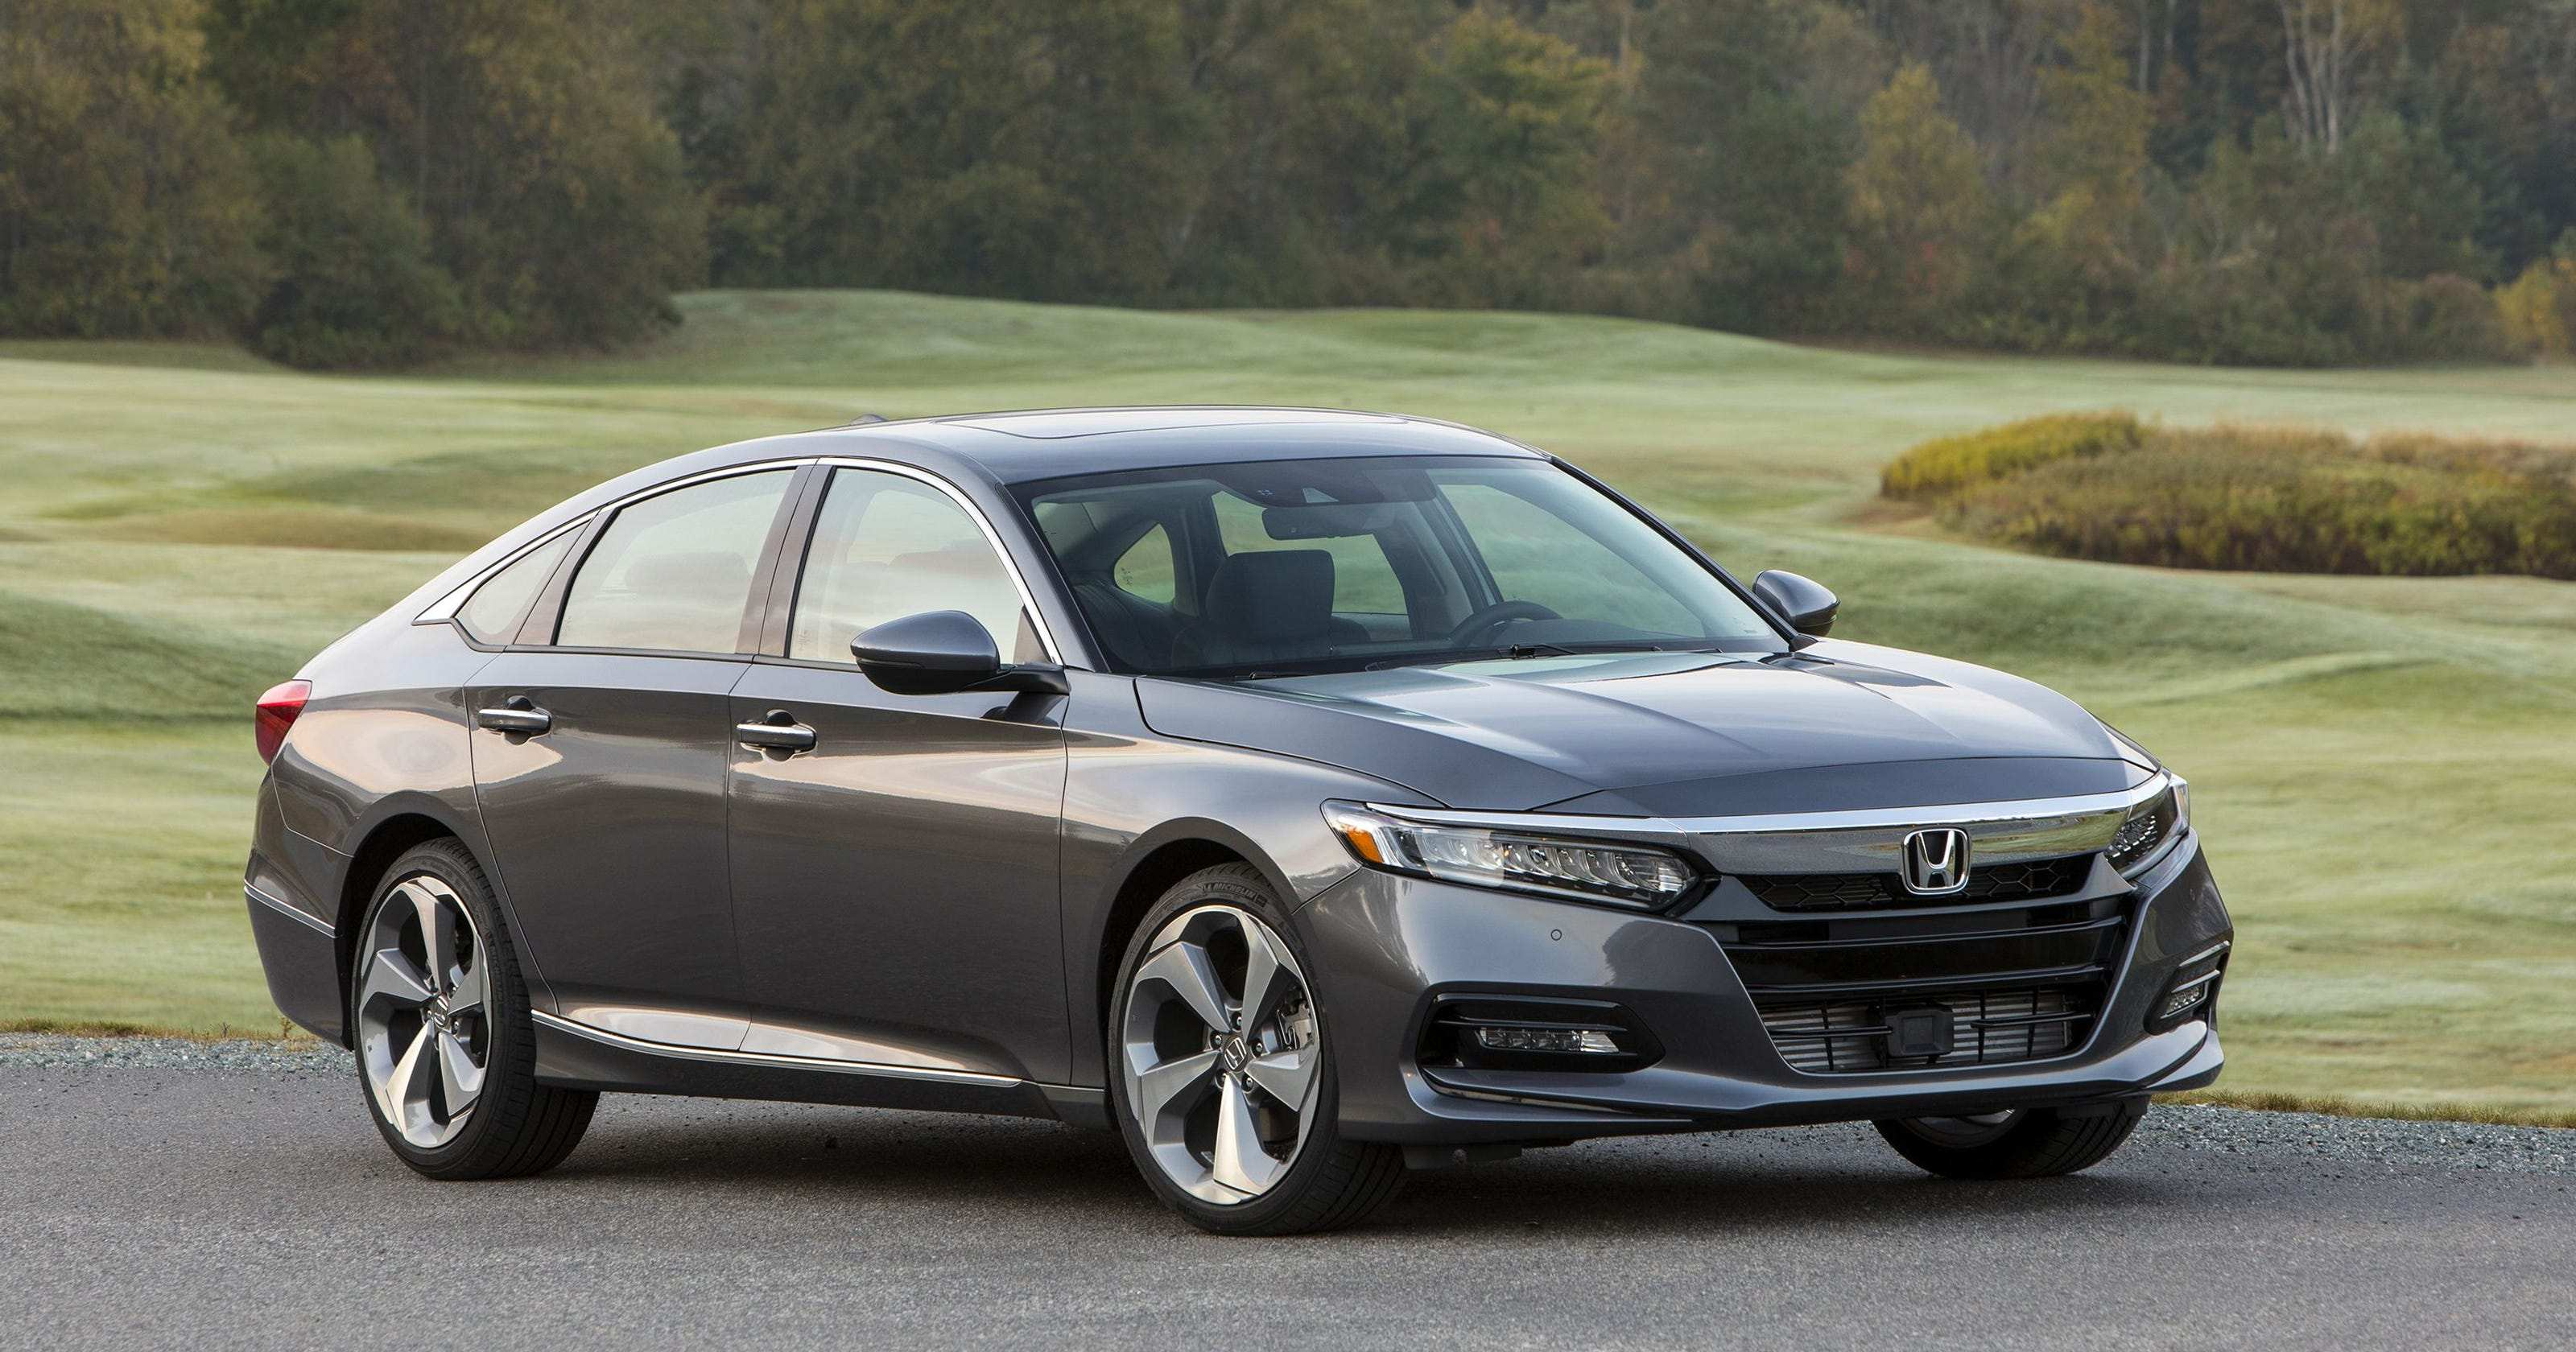 48 The 2020 Honda Accord Engine